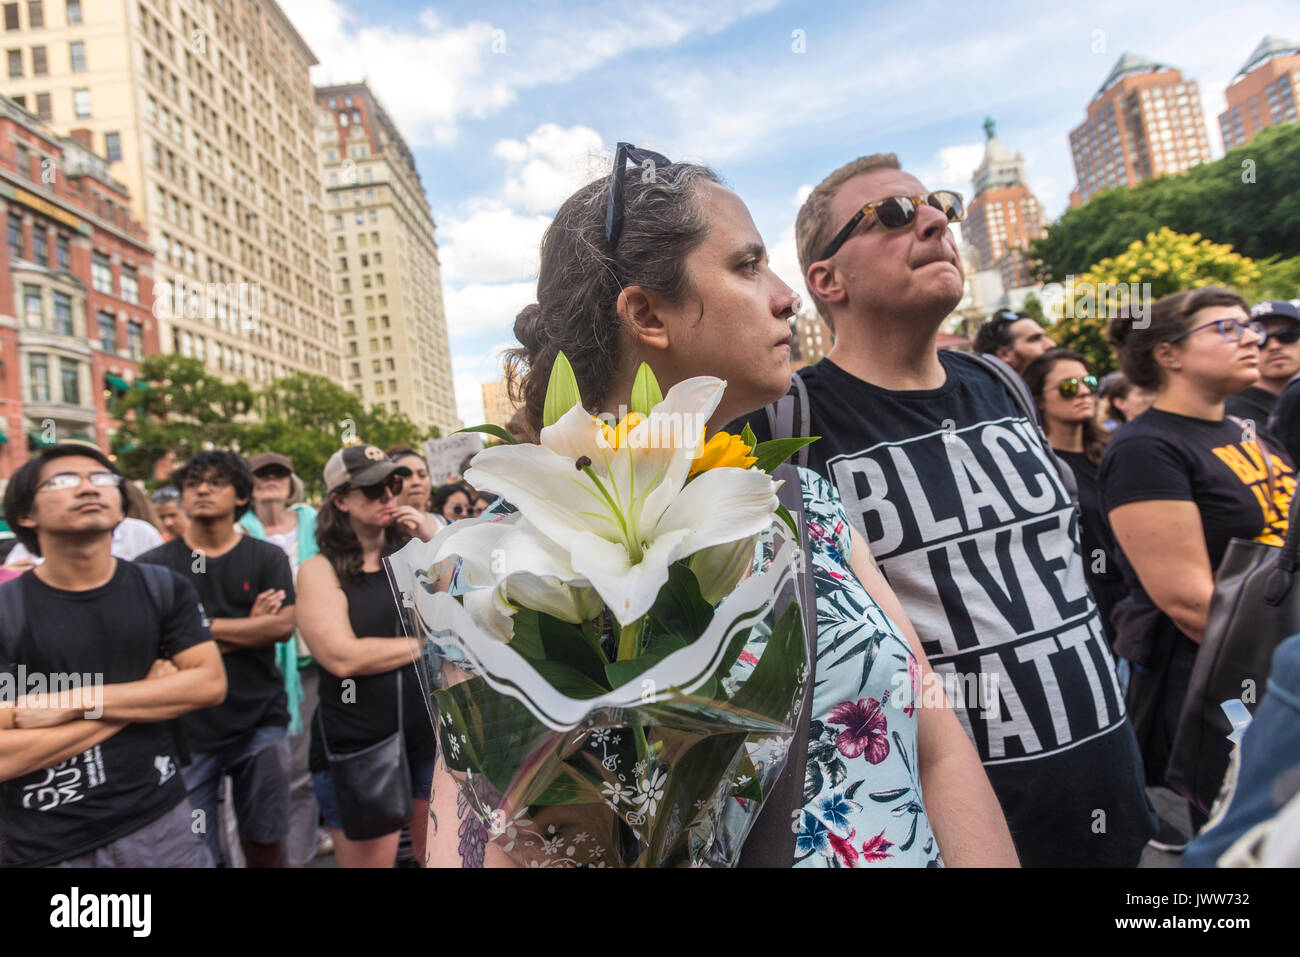 New York, NY, USA. 13th Aug, 2017. New Yorkers gathered in Union Square to stand in solidarity with the people of Charlottesville, VA, condemn the Alt Right, fascism, and President Donald Trump, after three people were killed in connection with a right wing rally called 'Unite the right.' The crowd included activists from Democratic Socialists, Black Lives Matter, the ACLU and other groups. CREDIT: Credit: Stacy Walsh Rosenstock/Alamy Live News - Stock Image